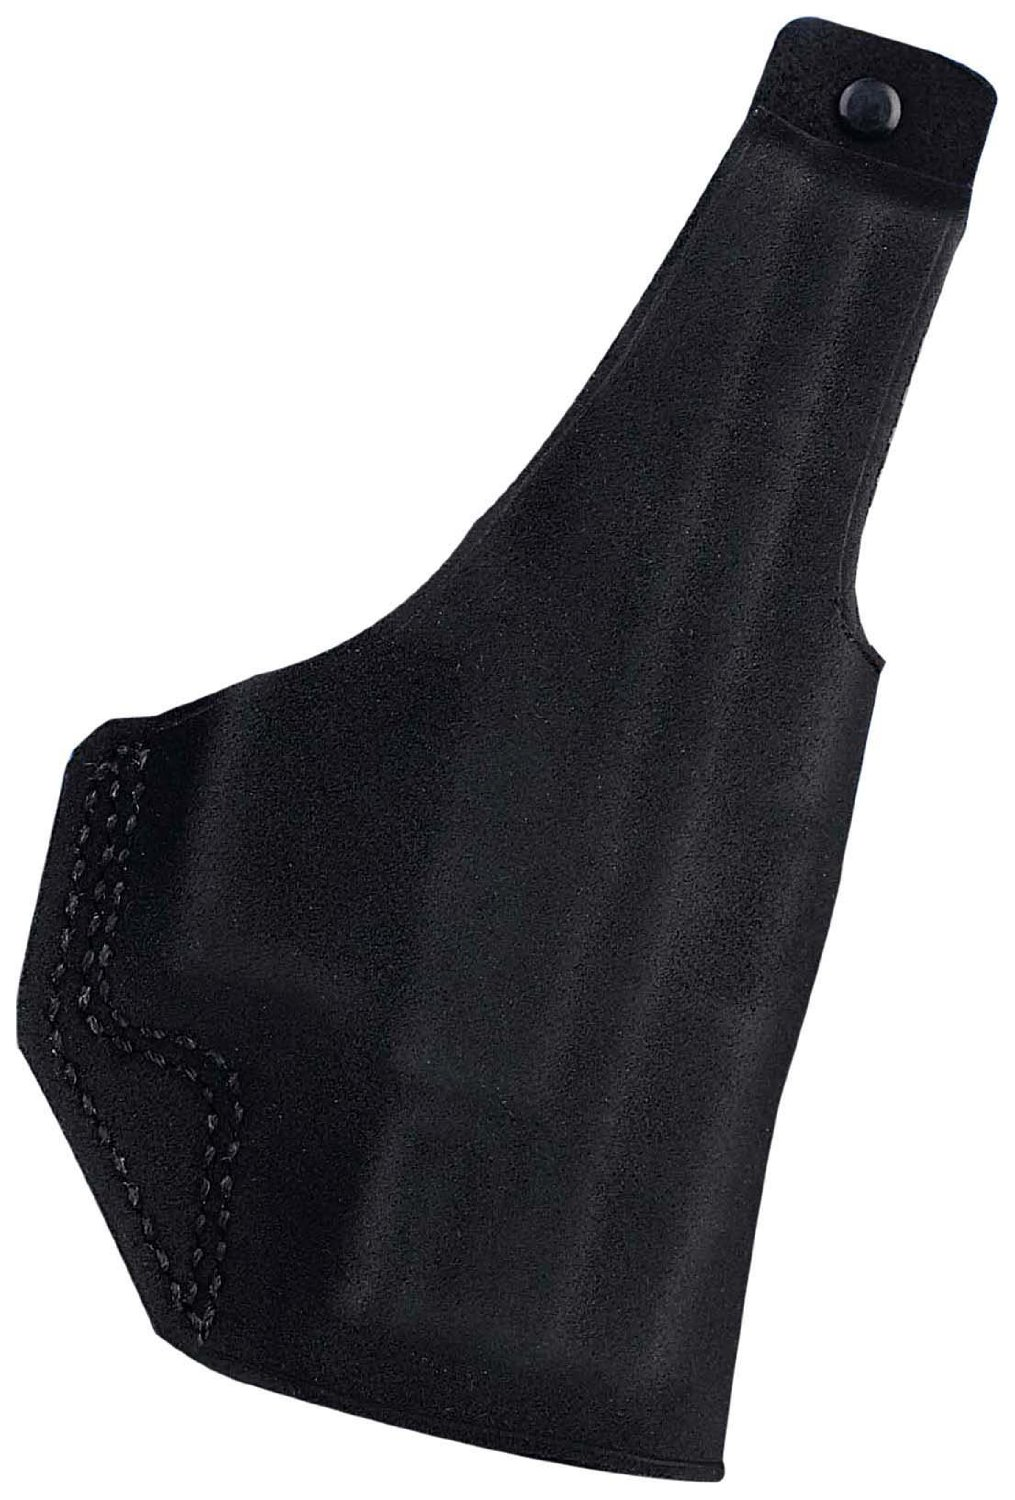 Galco Paddle Lite Holster for Glock 26, 27, 33